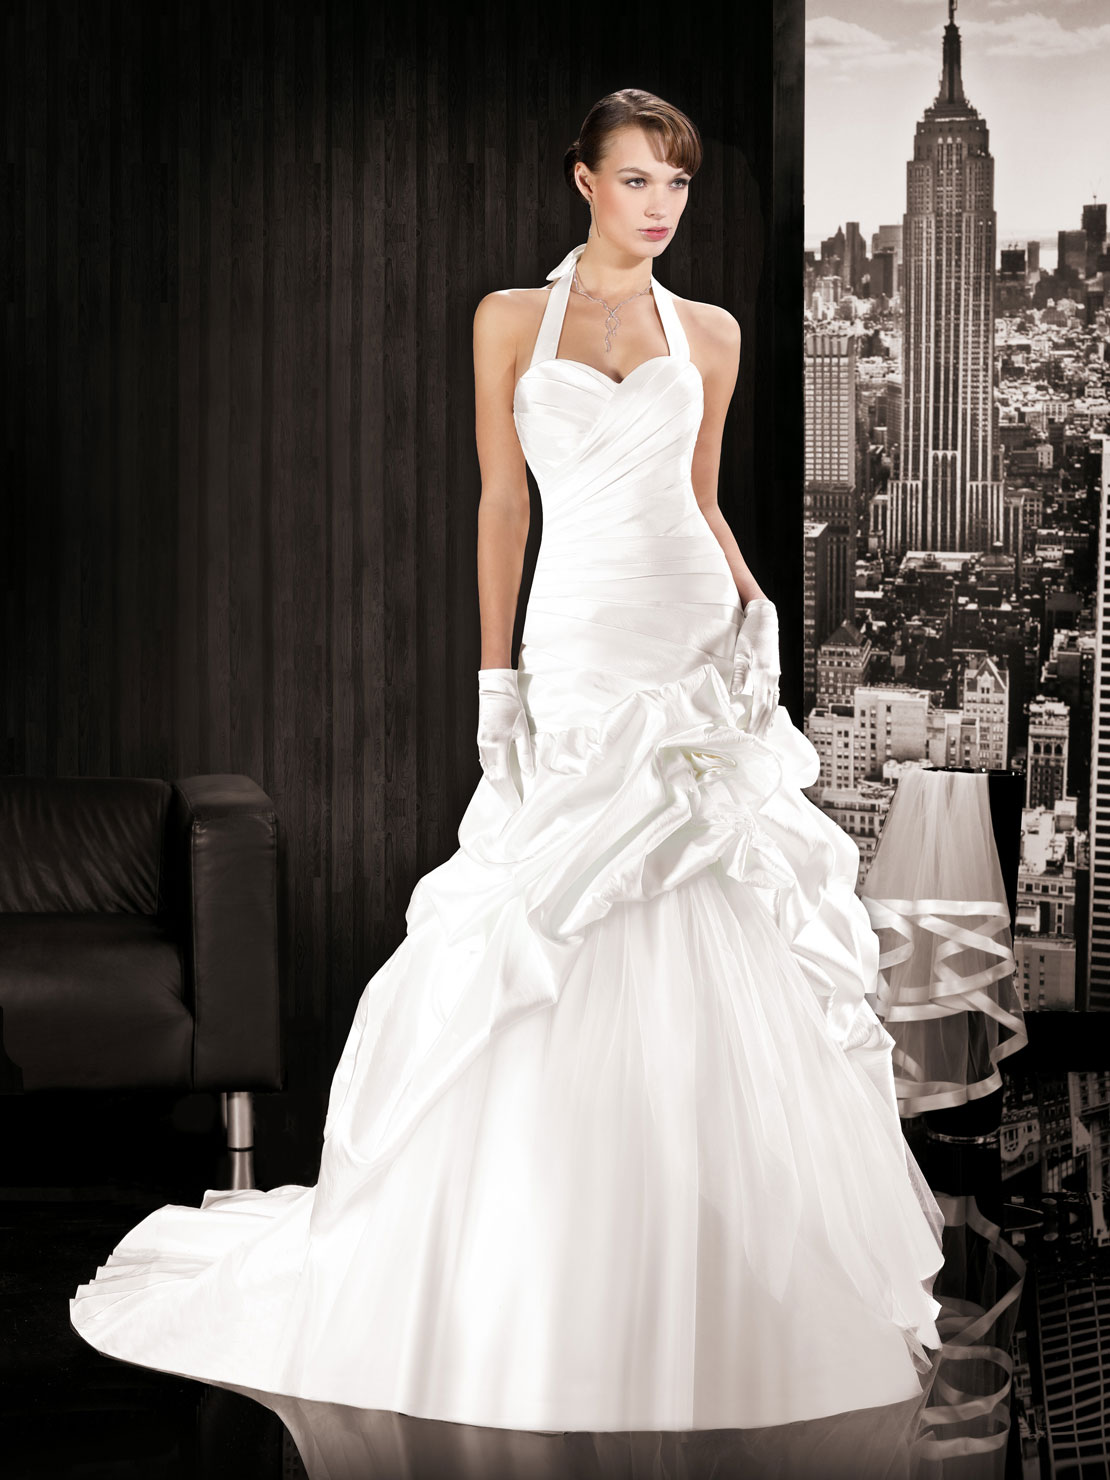 Wedding dresses in paris cheap for Wedding dresses in paris france